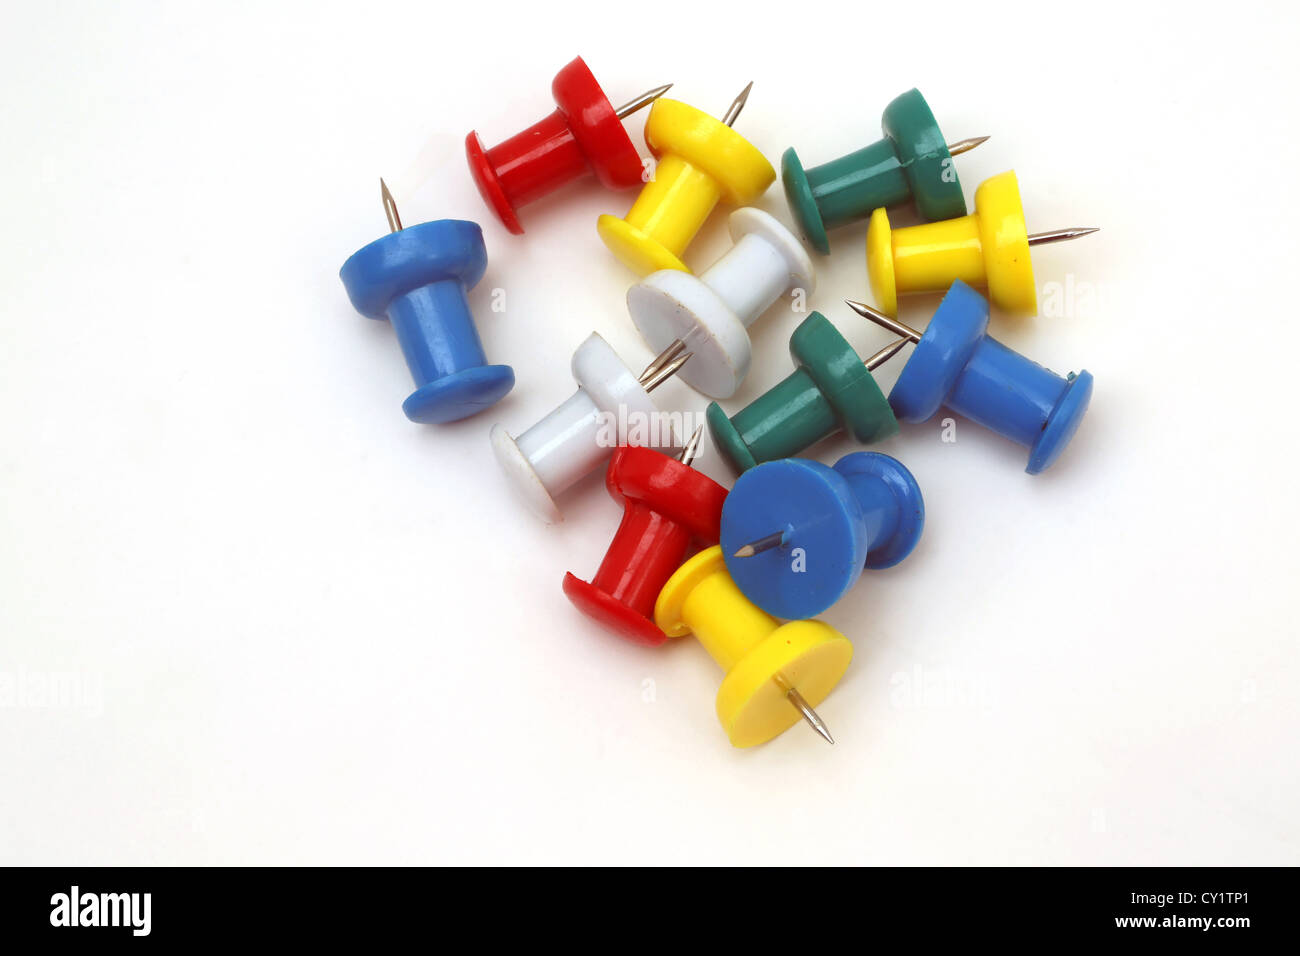 Pile Of Colourful Push Pins - Stock Image